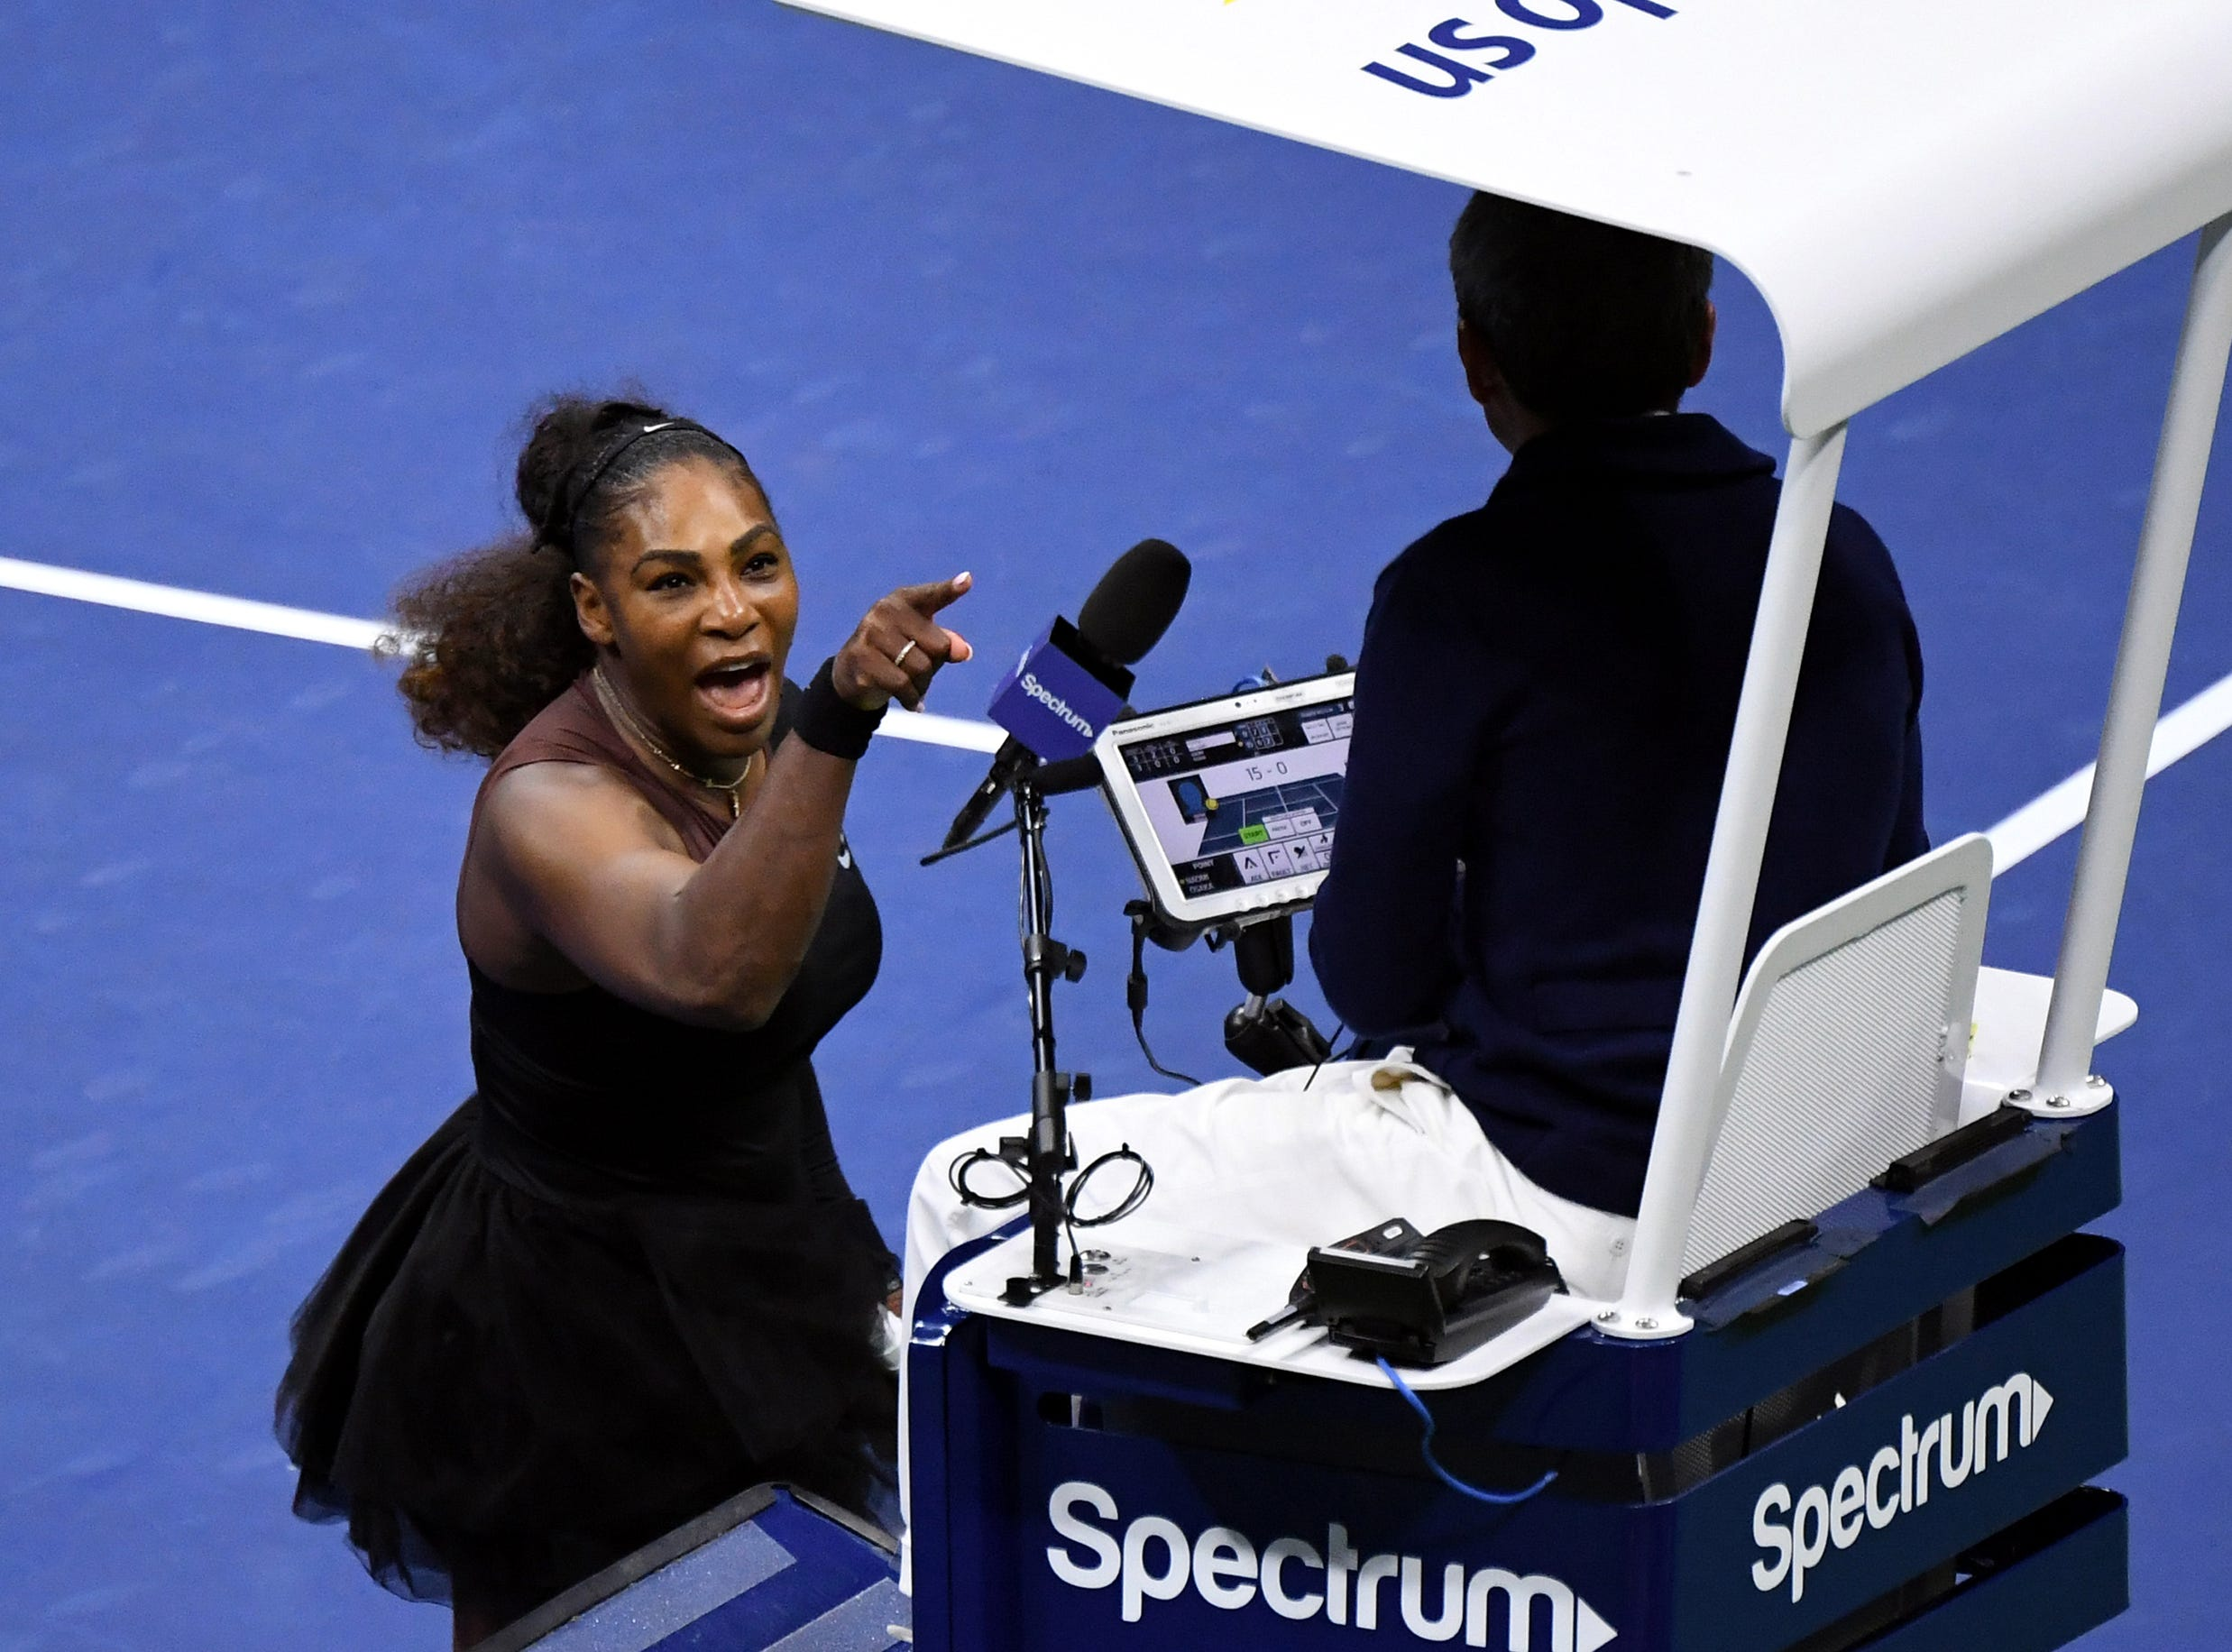 Serena Williams of the United States yells at chair umpire Carlos Ramos in the women's final of the 2018 U.S. Open tennis tournament on September 8, 2018, in New York. Williams was docked a game for the three violations against her in her loss to Naomi Osaka of Japan.